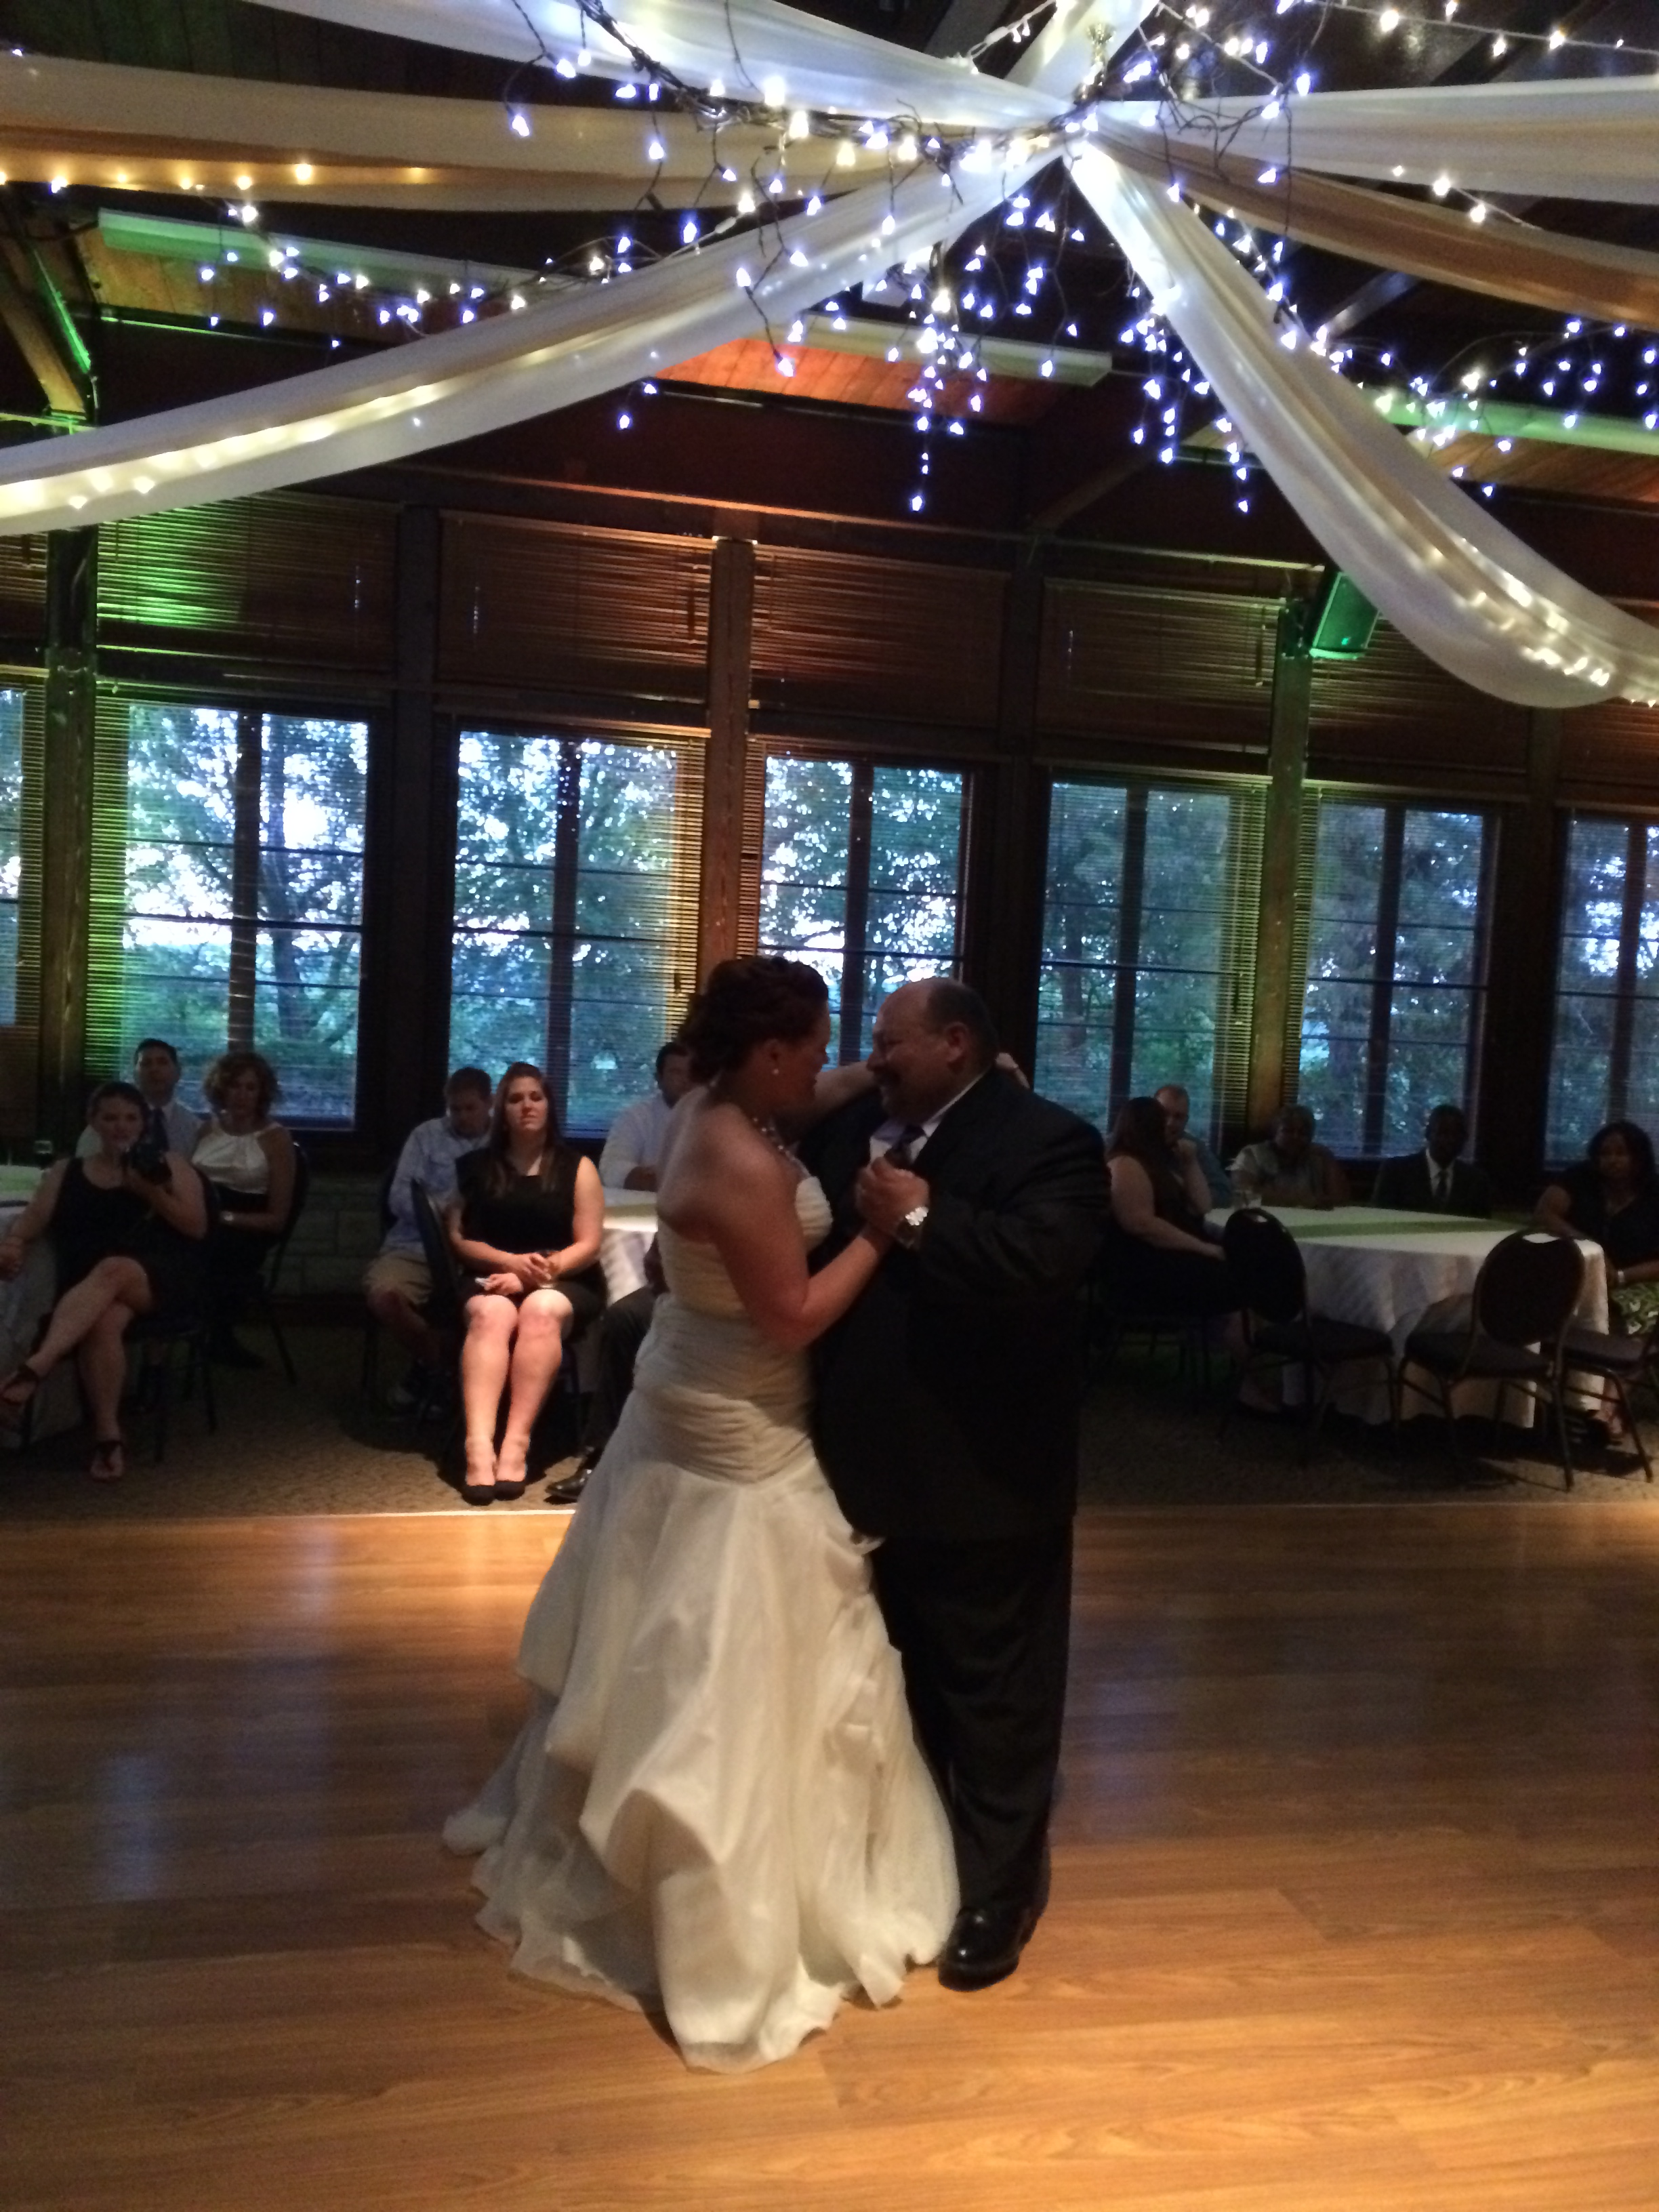 Starved Rock Lodge Utica Illinois See Photos From Recent Weddings And Events Guys On The Radio Dj Service